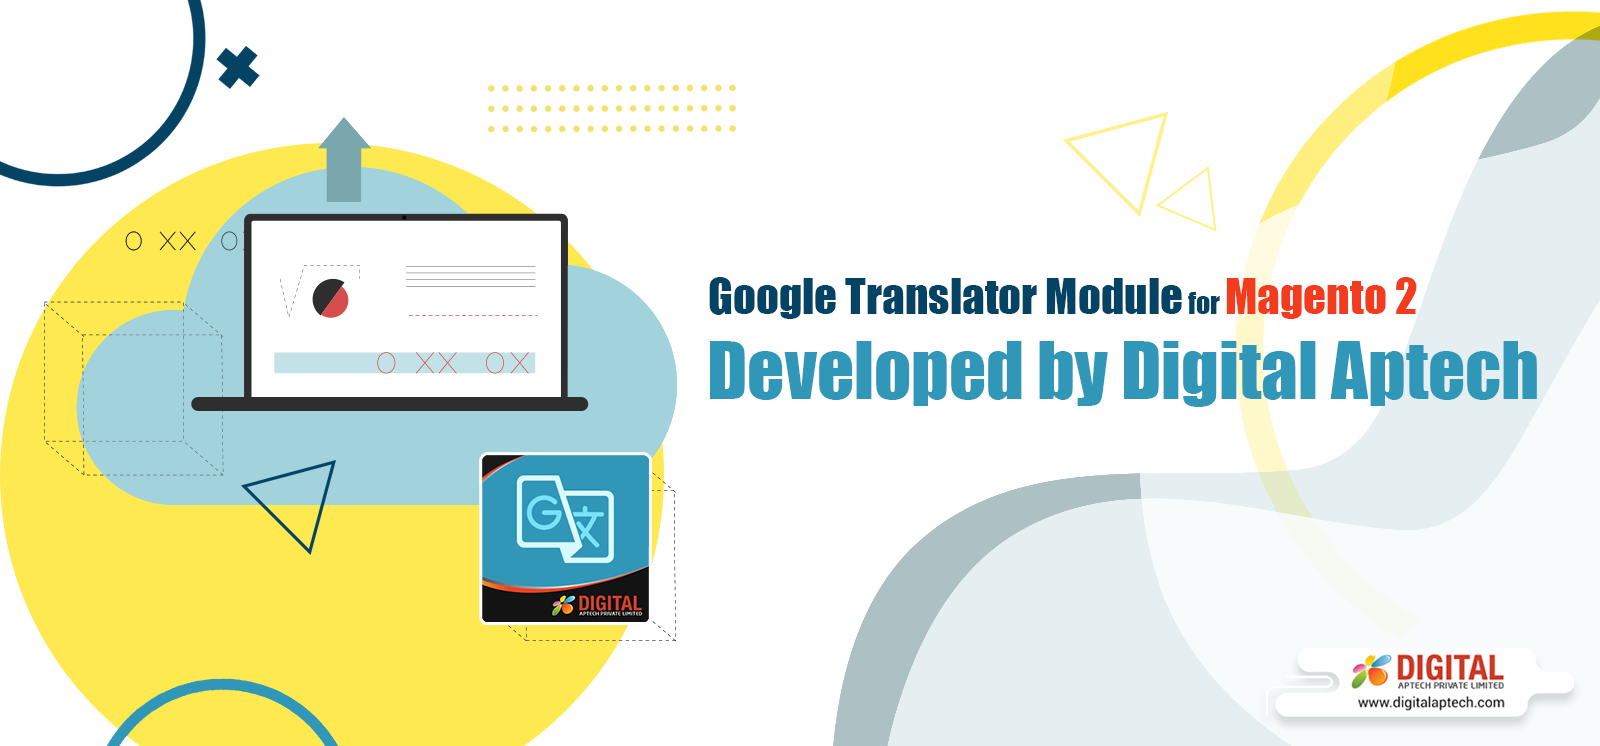 Google Translator Module